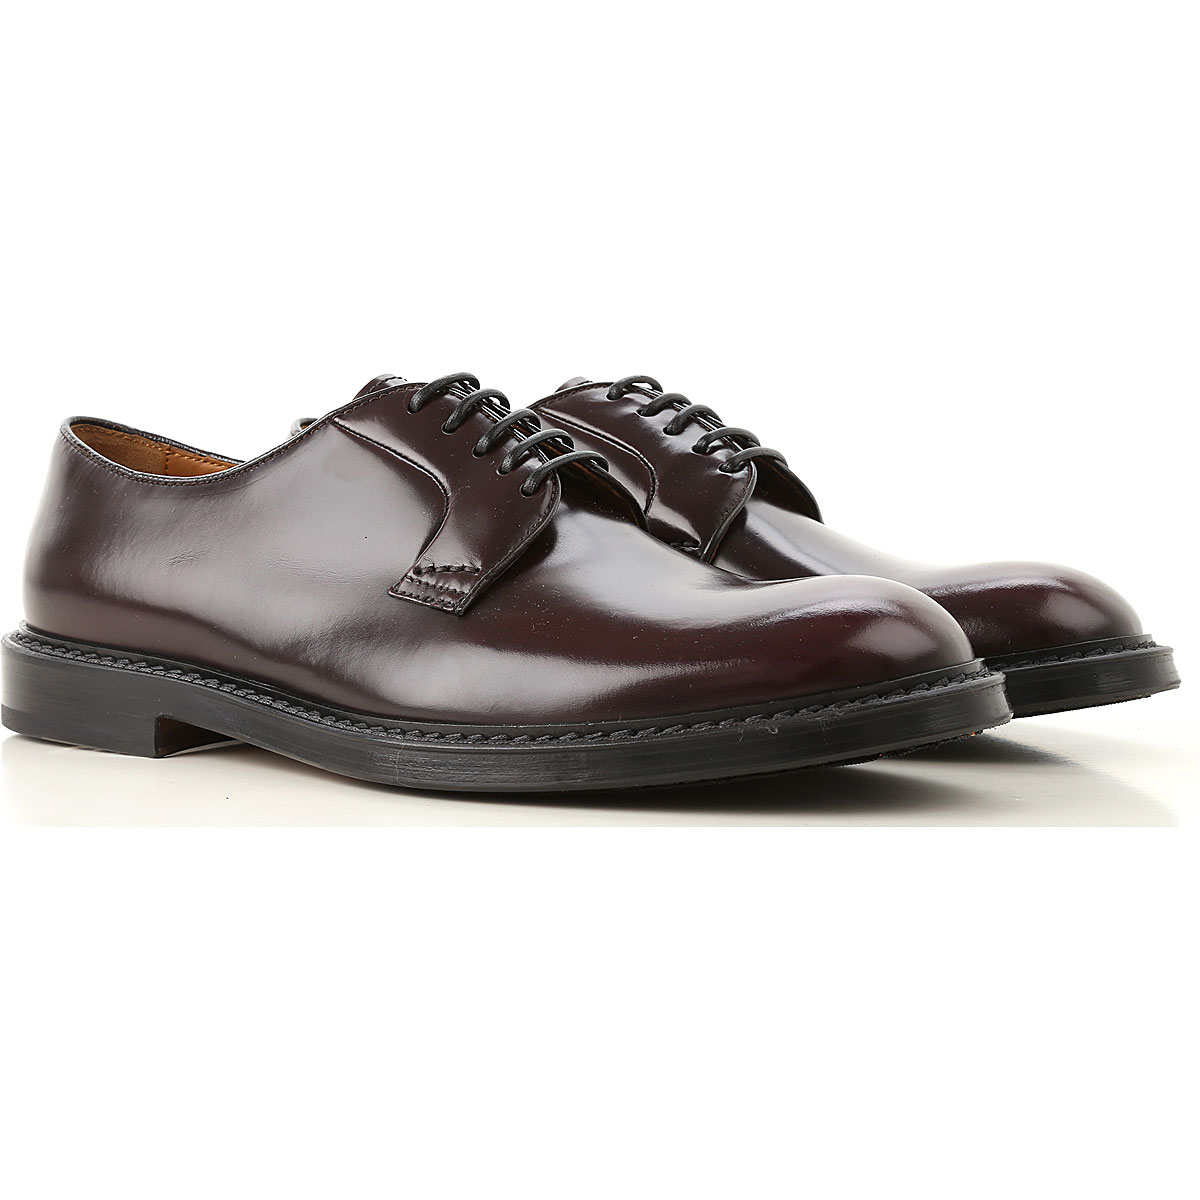 Image of Doucals Lace Up Shoes for Men Oxfords, Derbies and Brogues, Bordeaux, Leather, 2017, 10 10.5 7.5 8 9